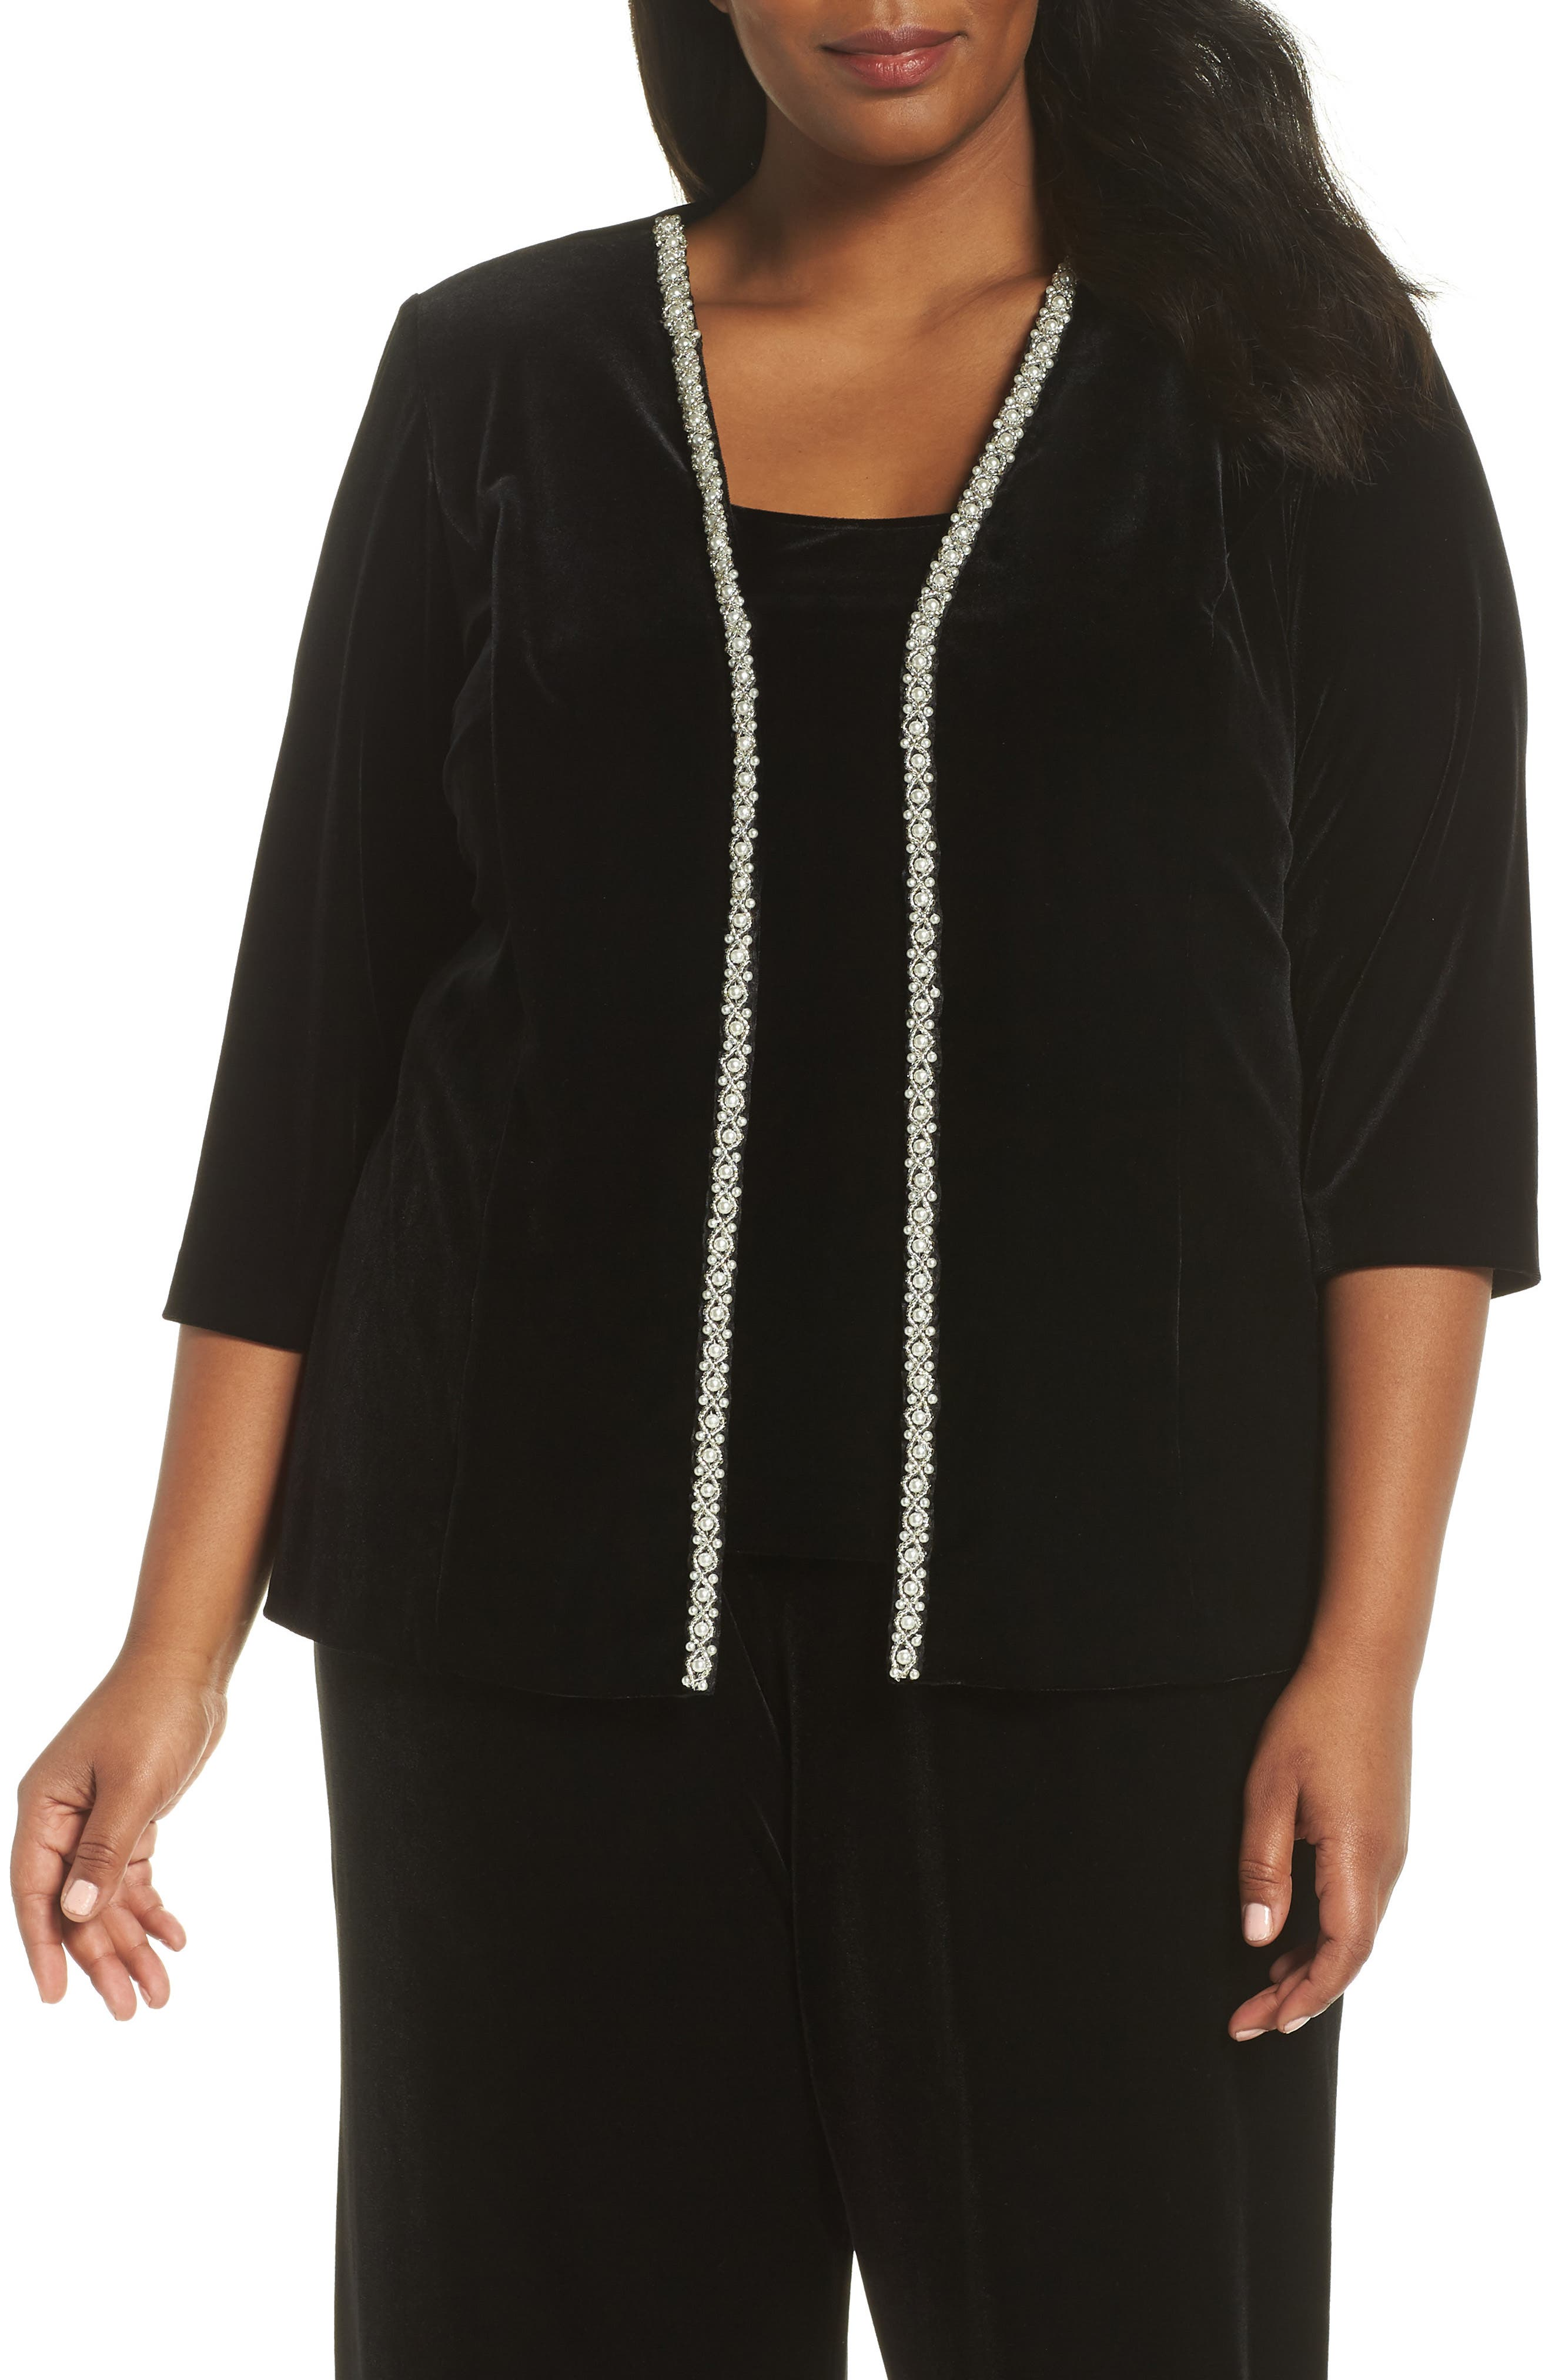 Imitation Pearl Embellished Twinset,                             Main thumbnail 1, color,                             BLACK